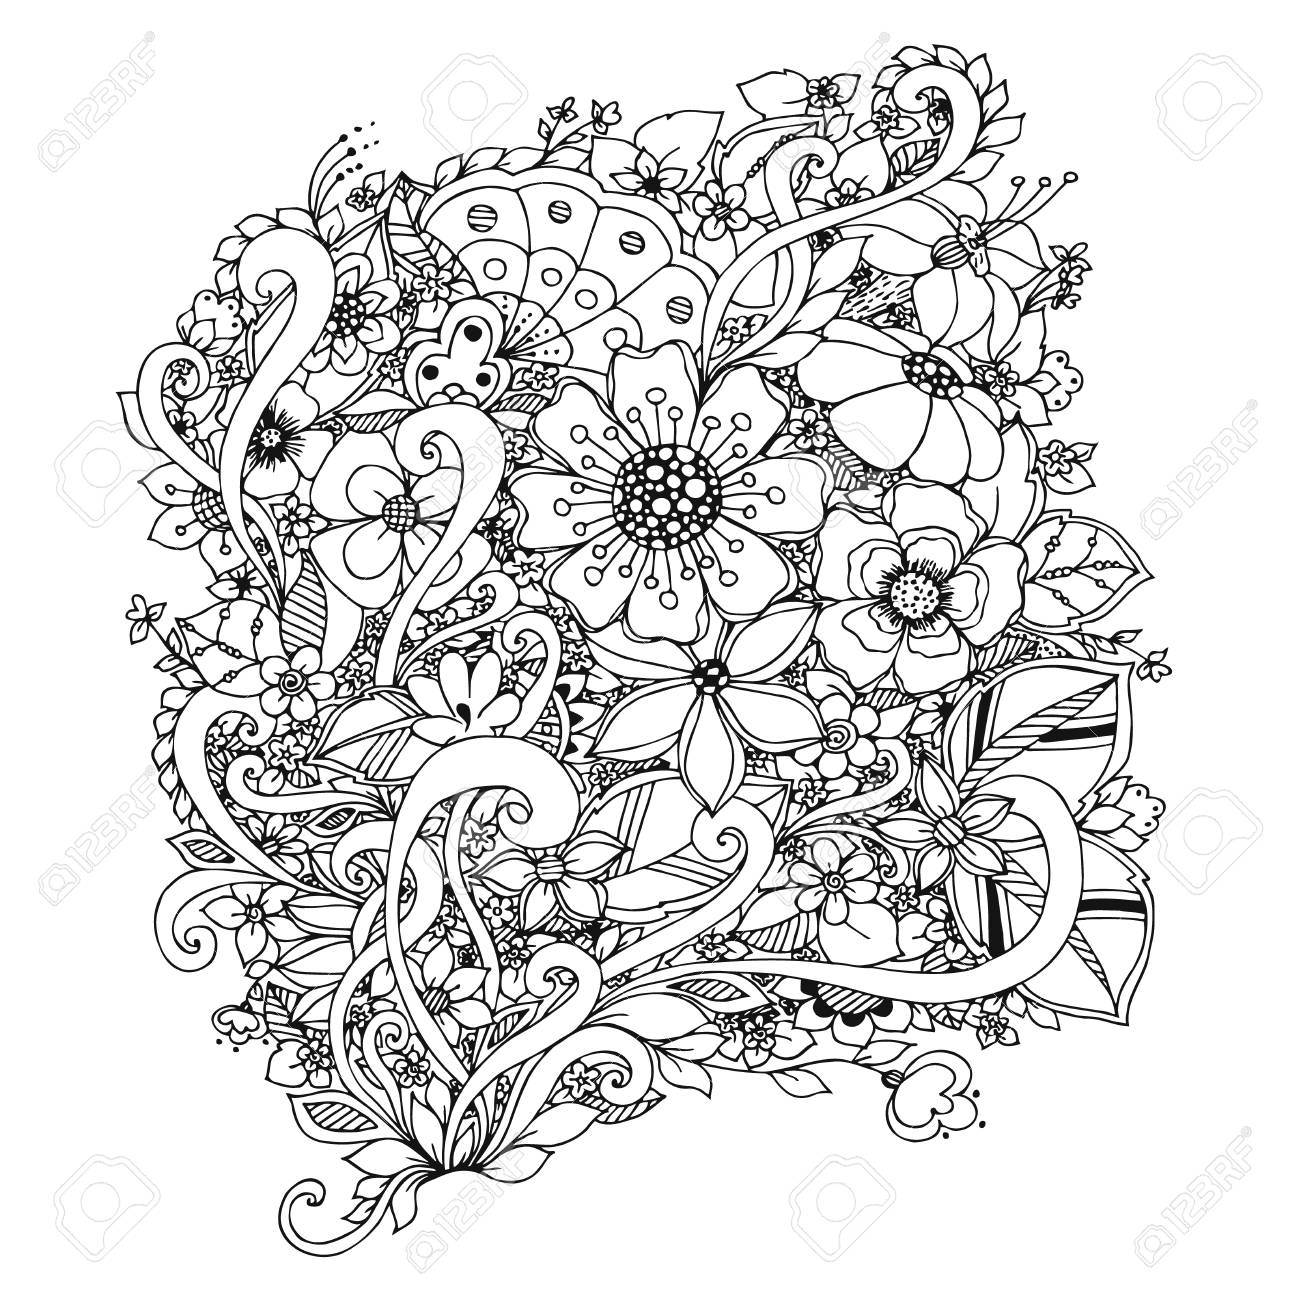 Vector Illustration Of Flowers Doodle. Adult Coloring Books. Royalty ...